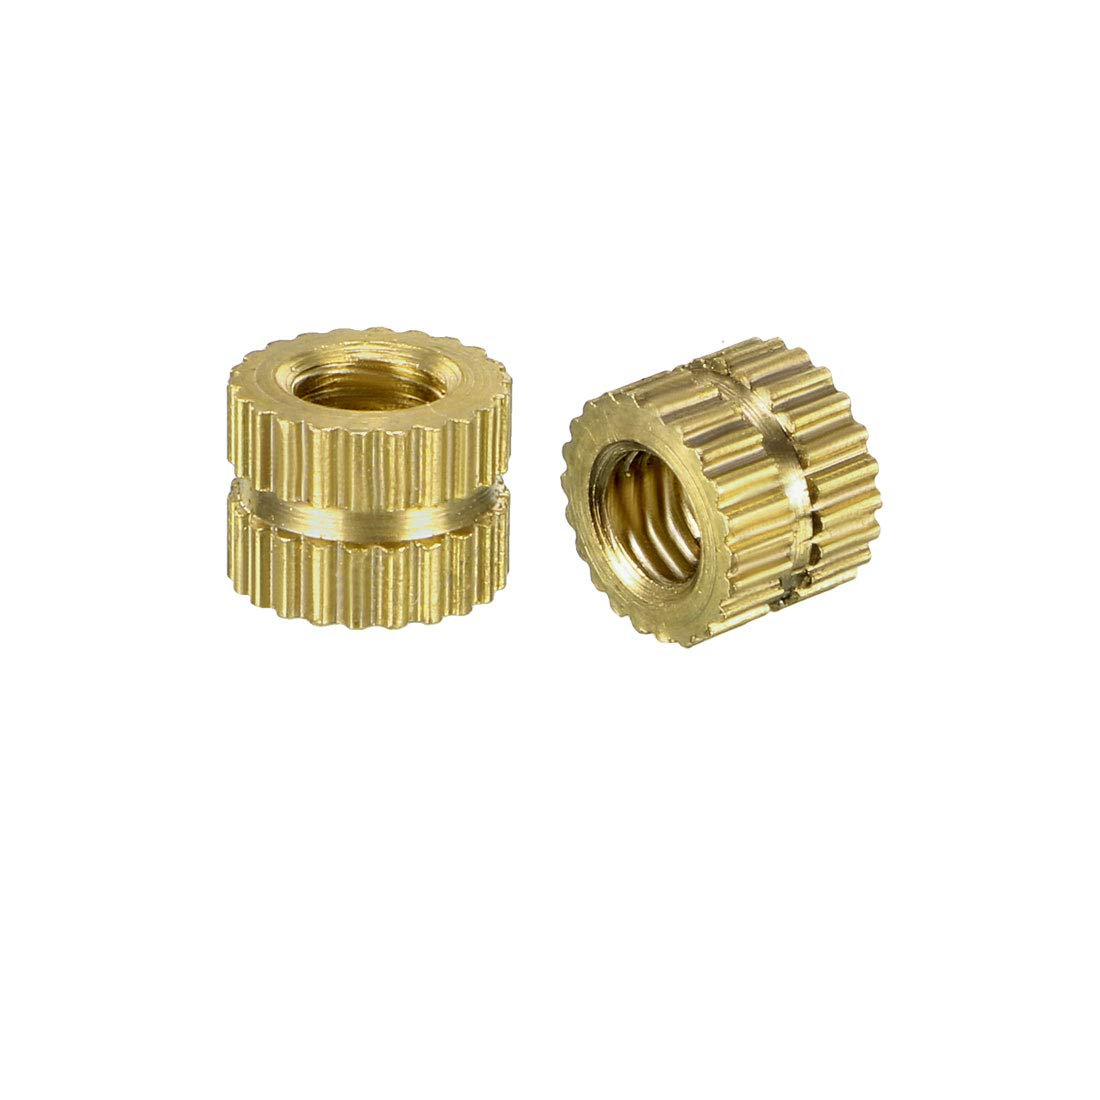 uxcell Knurled Threaded Insert, M3 x 4mm (L) x 5.4mm (OD) Female Thread Brass Embedment Nuts, Pack of 100